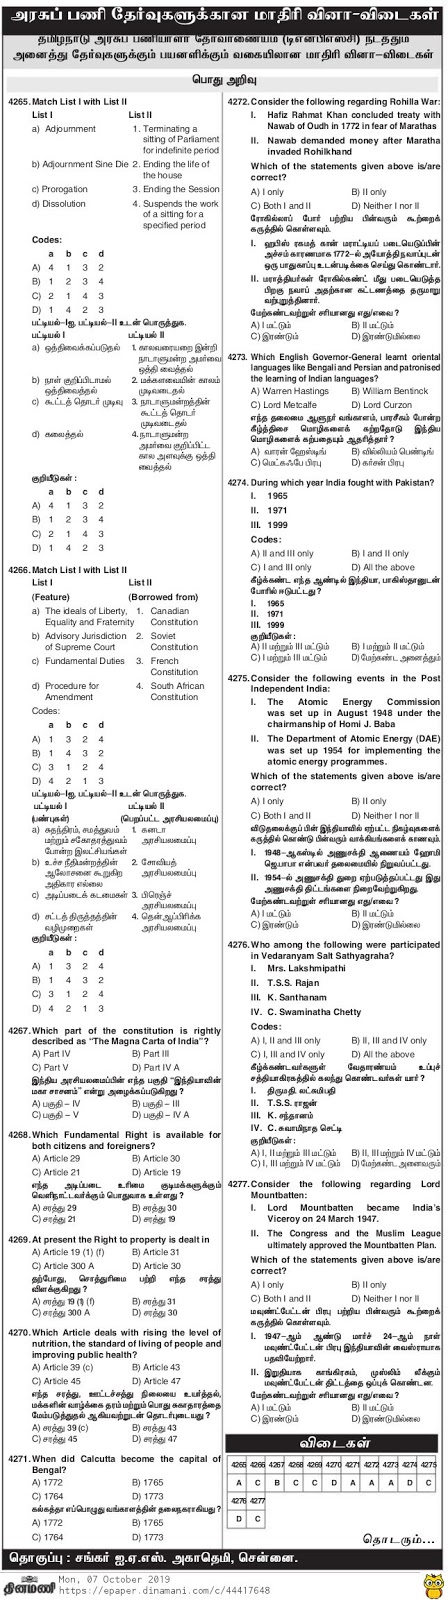 TNPSC General Studies Model Questions and Answers - 07-10-2019